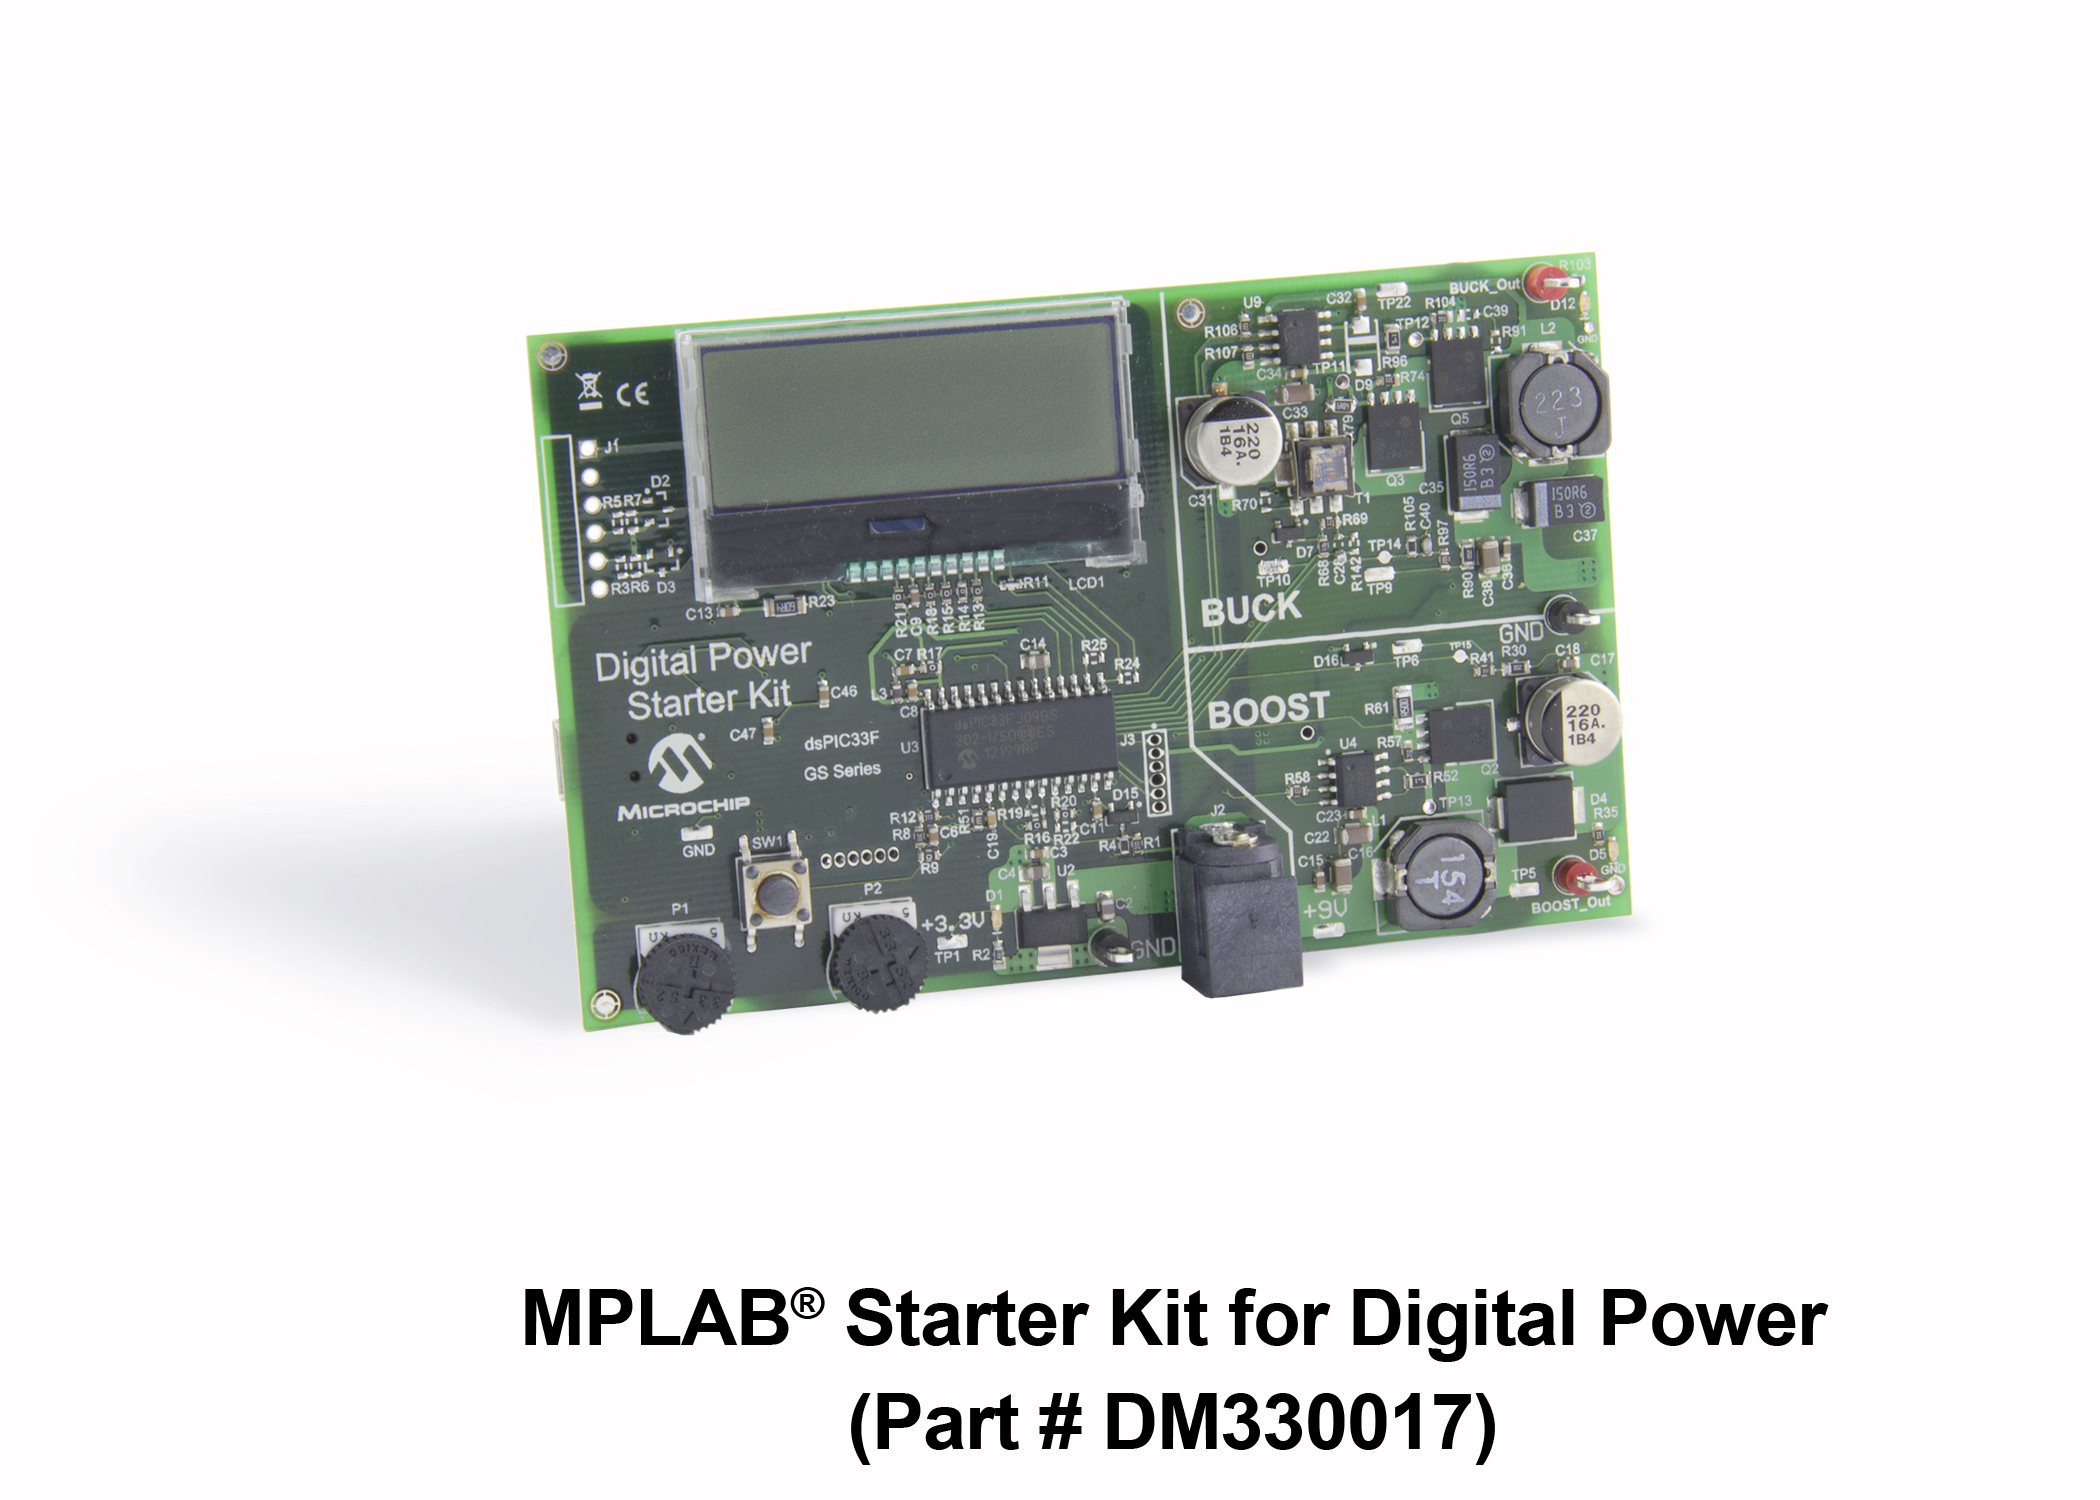 Development Tools Dsc Gs Boost Wiring Diagram The Mplab Starter Kit For Digital Power Allows User To Easily Explore Capabilities And Features Of Dspic33f Conversion Family